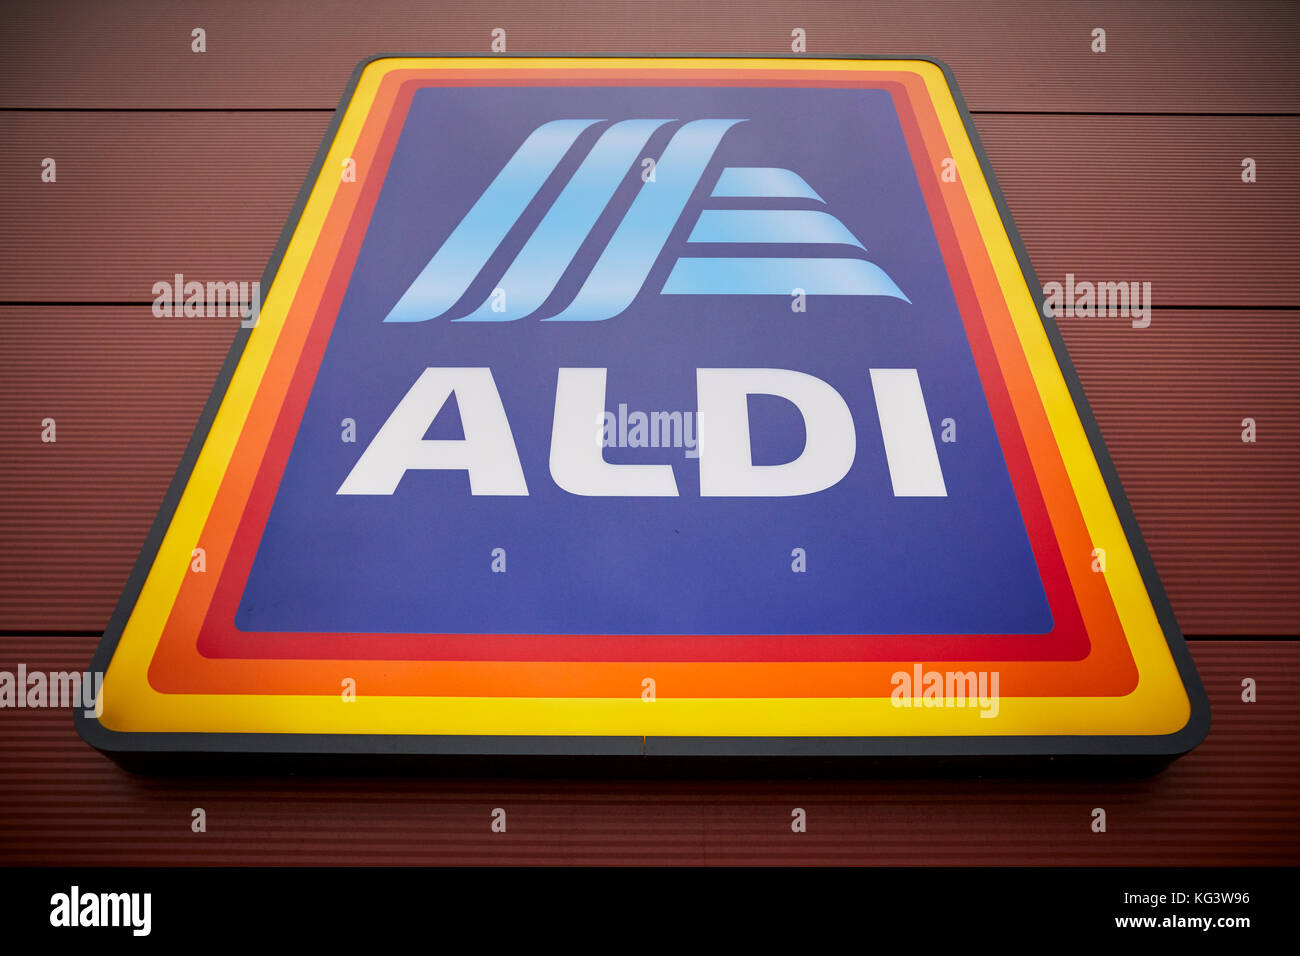 Aldi Reclame Aldi Supermarket Logo Stock Photos And Aldi Supermarket Logo